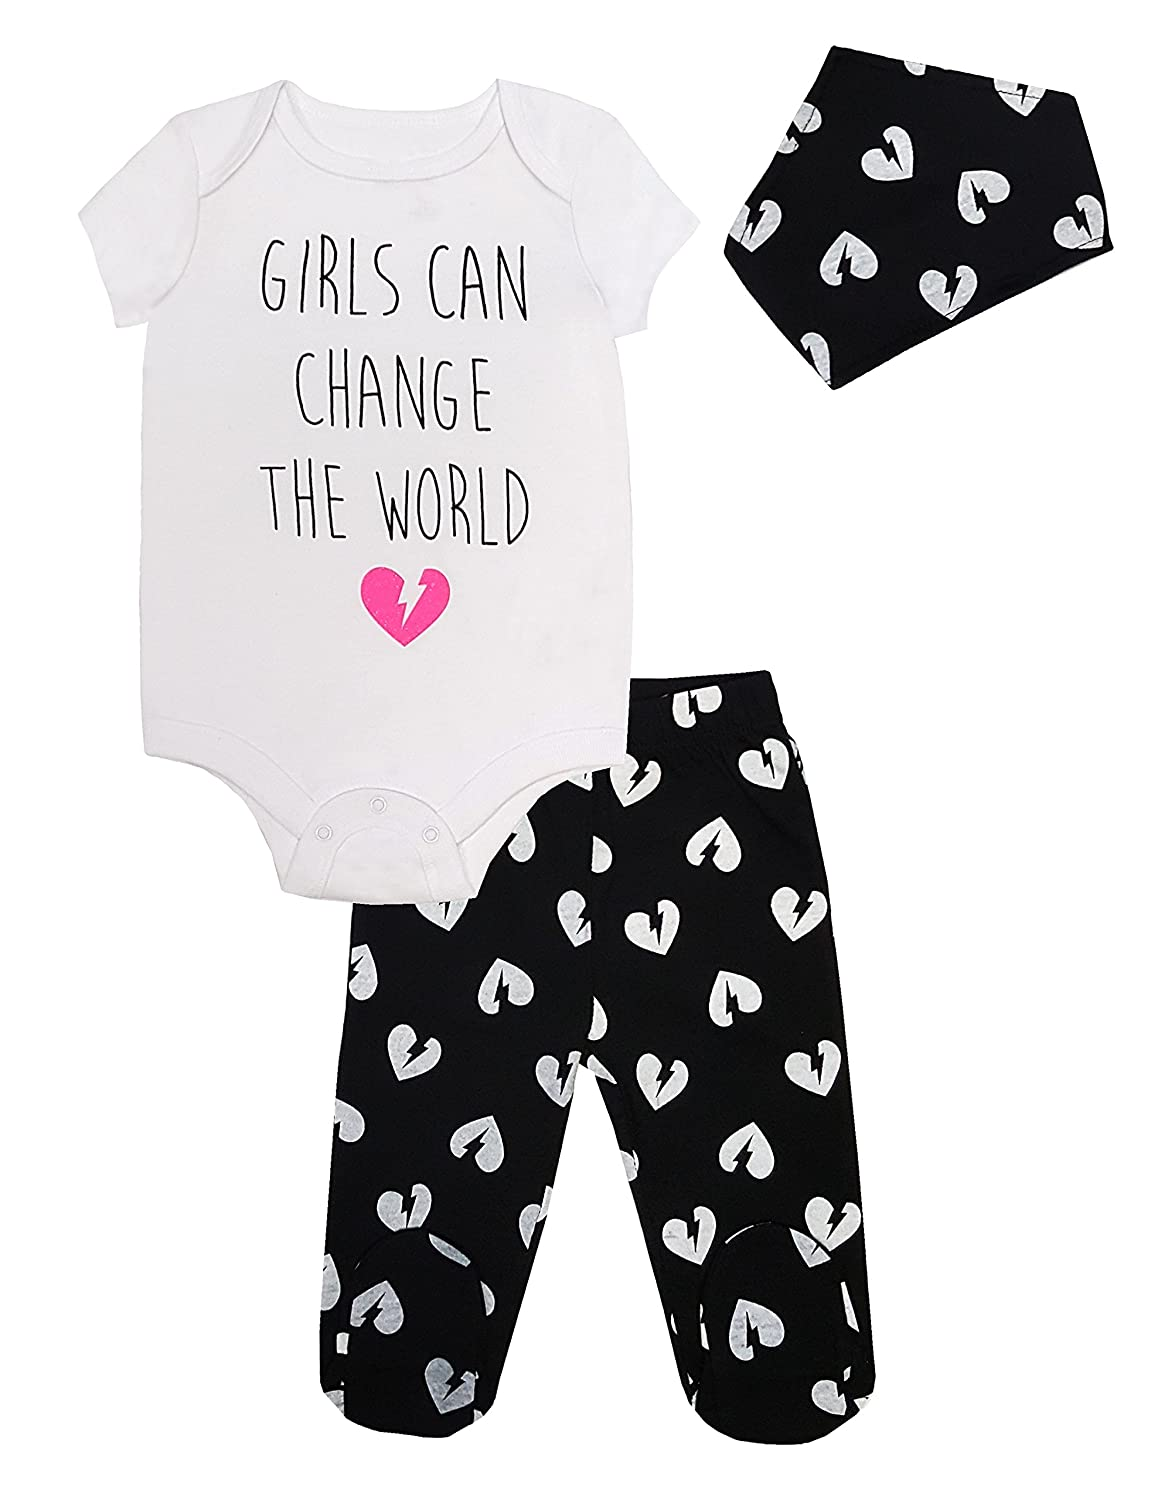 Mini Heroes - Infant 3 PC Girl's Bodysuit, Footed Pant and Bandana Set, White NTD Apparel